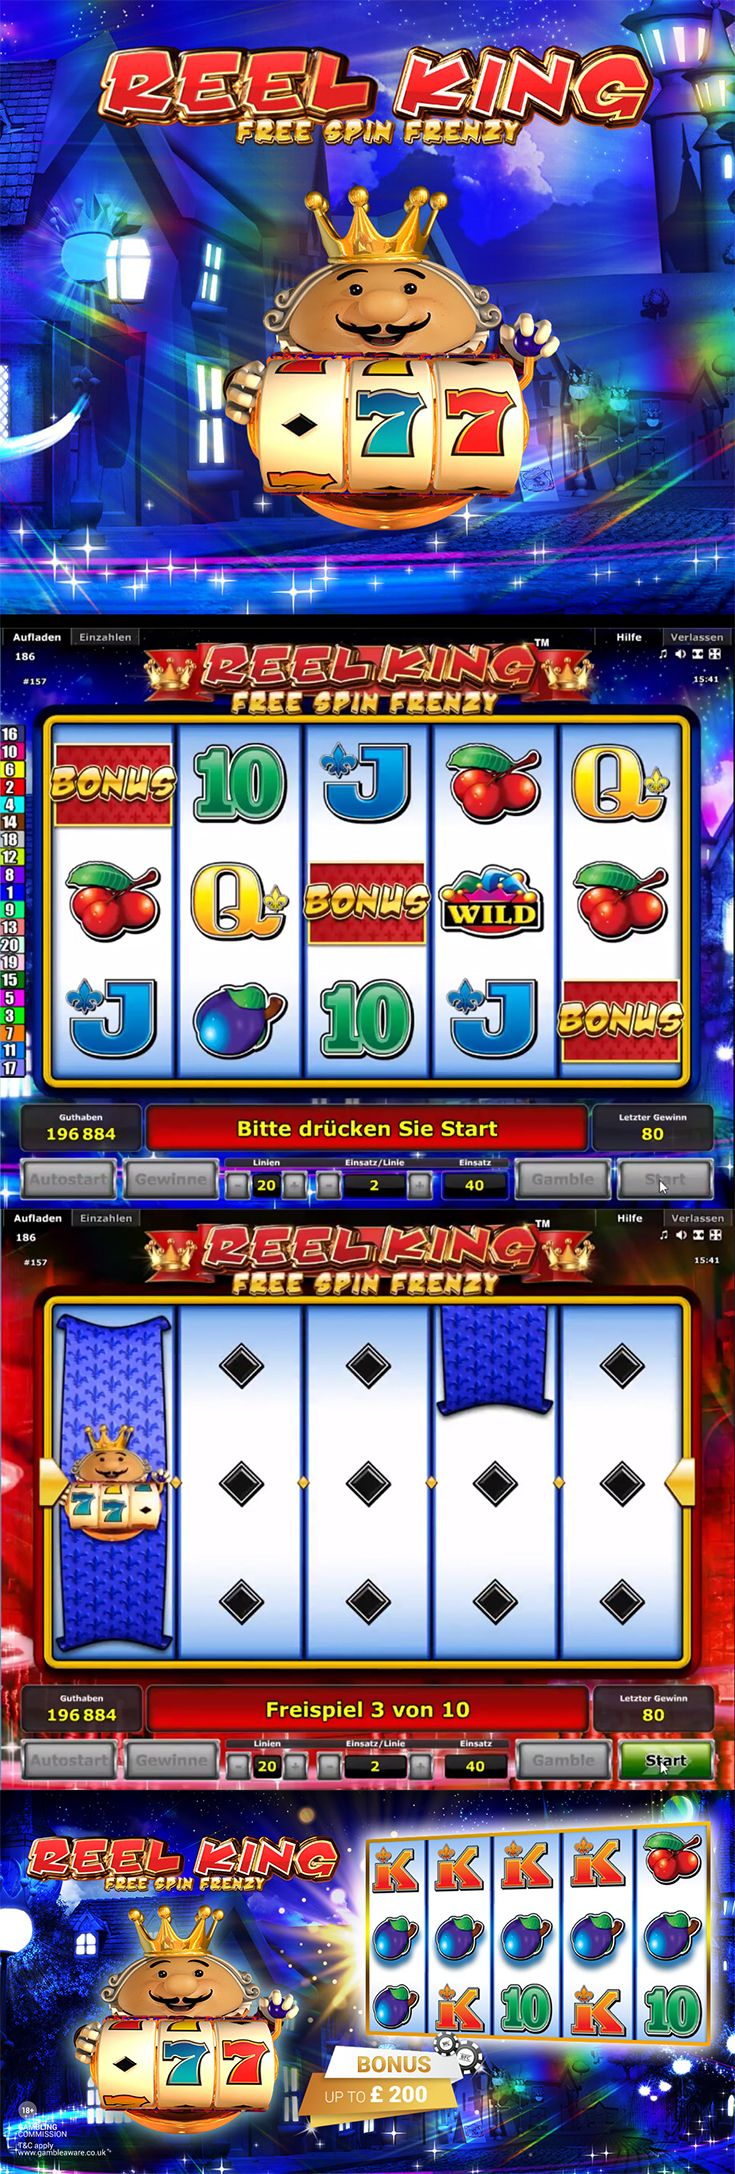 Bell Fruit Casino introduces Reel King Free Spins Frenzy